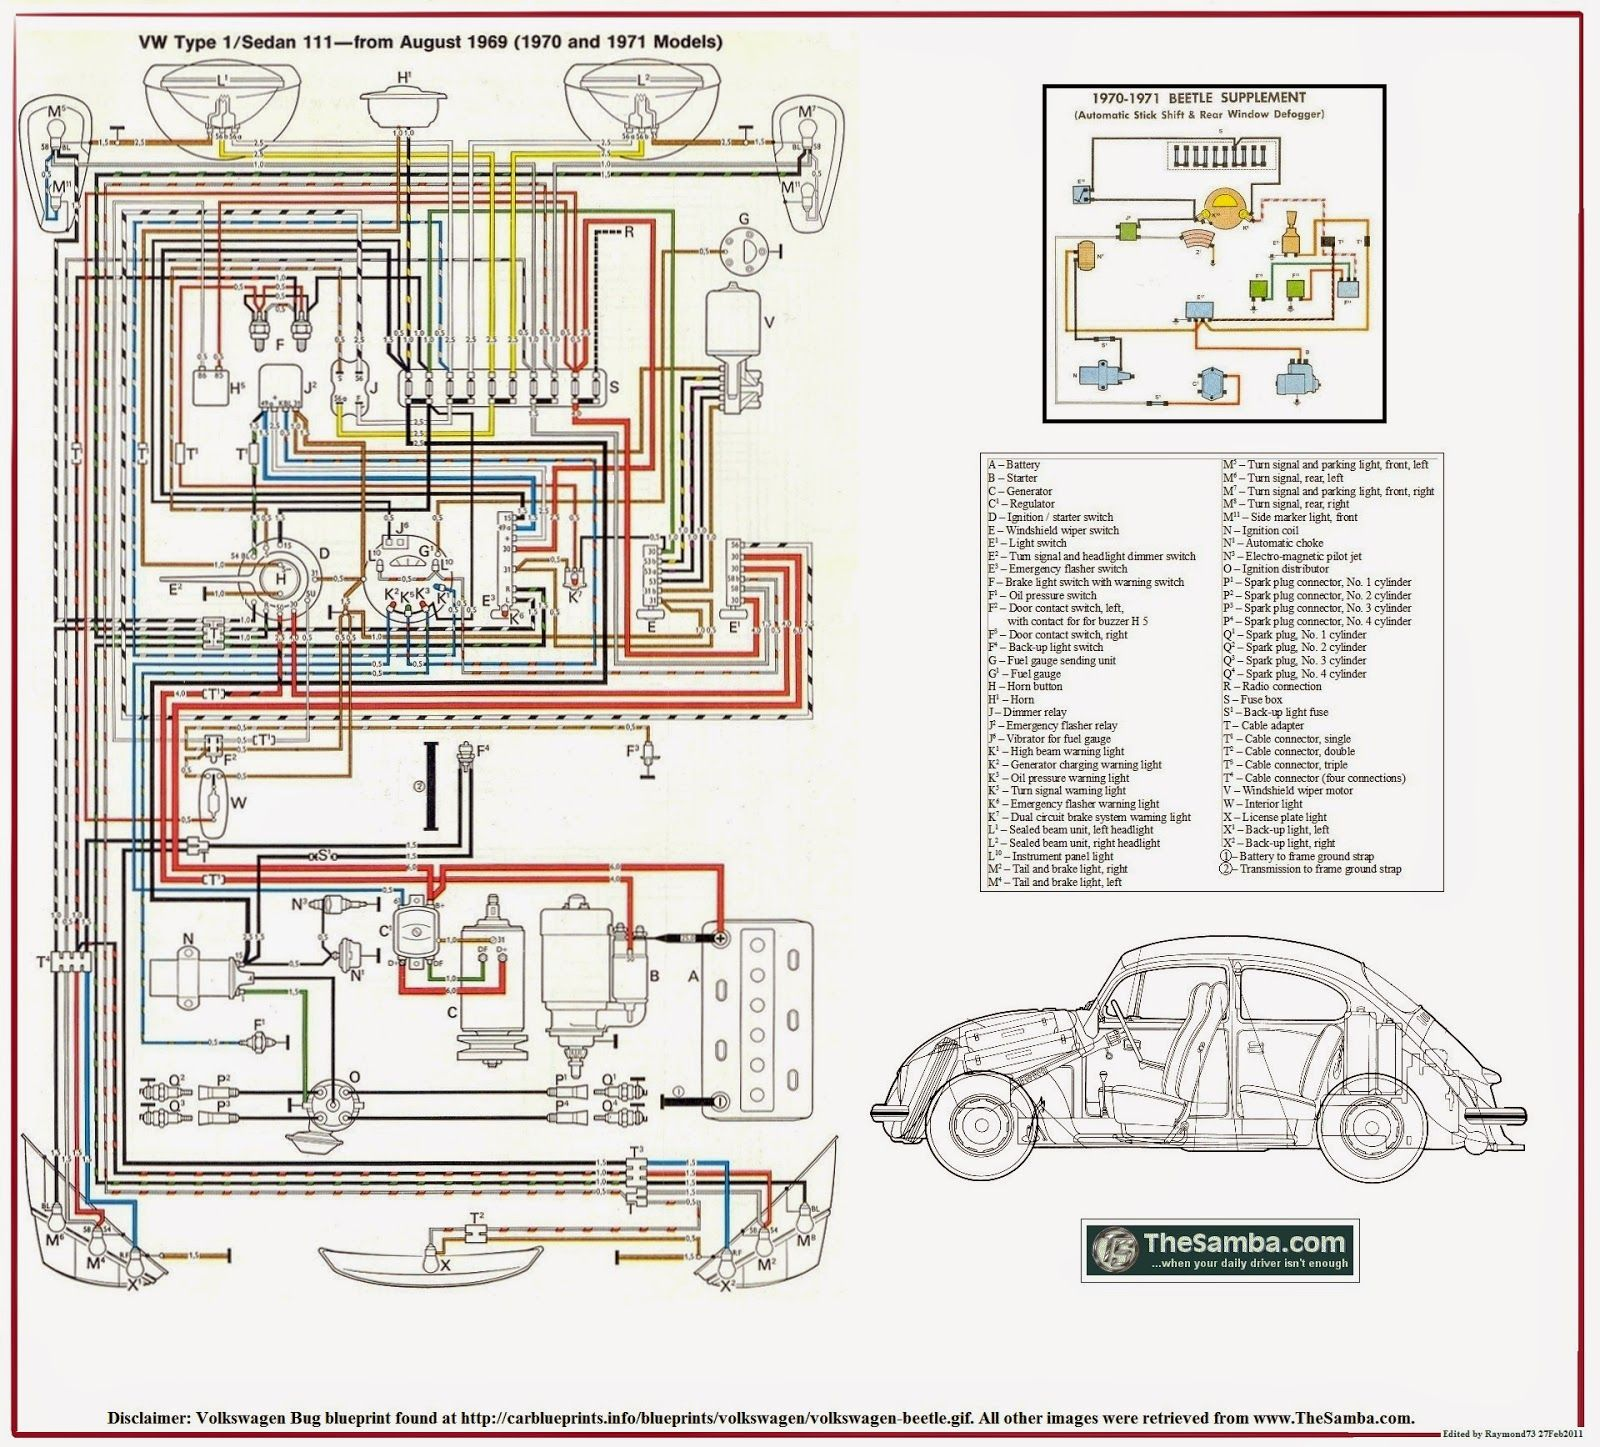 c42f7e50c6cd2df691326f8c1e5c6e97 urbi et orbi my bucket list journals volkswagen (vw) beetle wiring diagram for 1998 vw beetle at bayanpartner.co